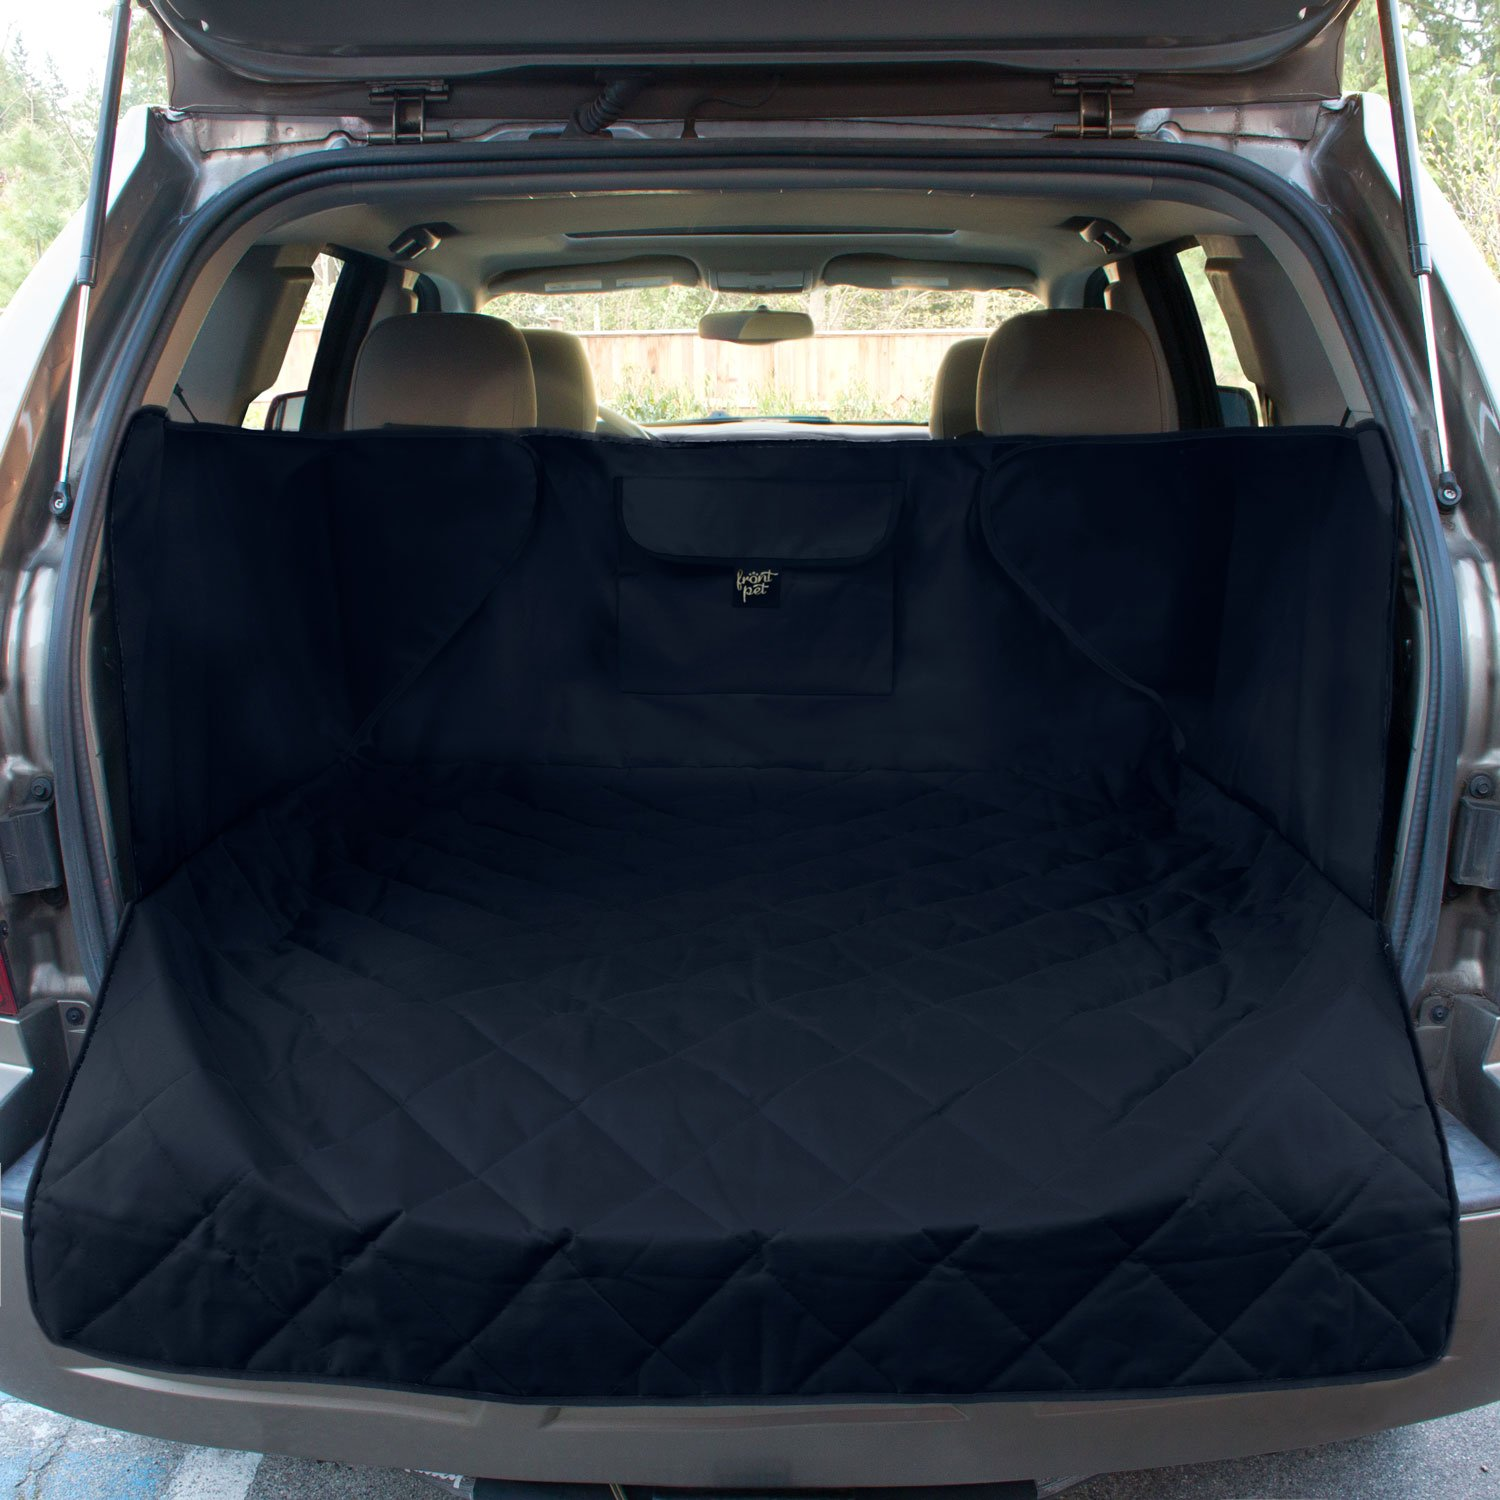 4. FrontPet Extra Wide Quilted Dog Cargo Cover for SUV